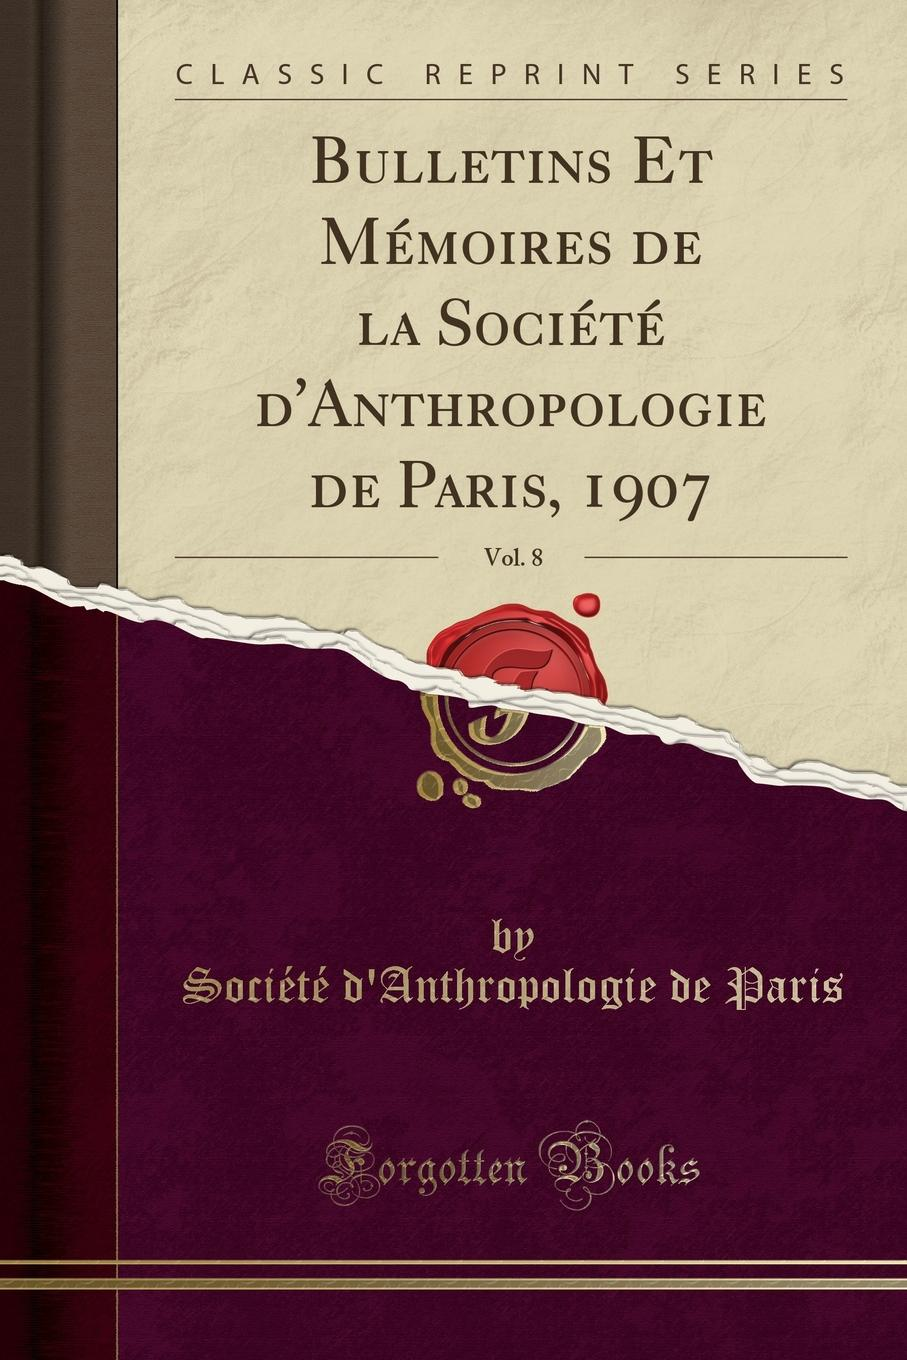 Société d'Anthropologie de Paris Bulletins Et Memoires de la Societe d.Anthropologie de Paris, 1907, Vol. 8 (Classic Reprint)